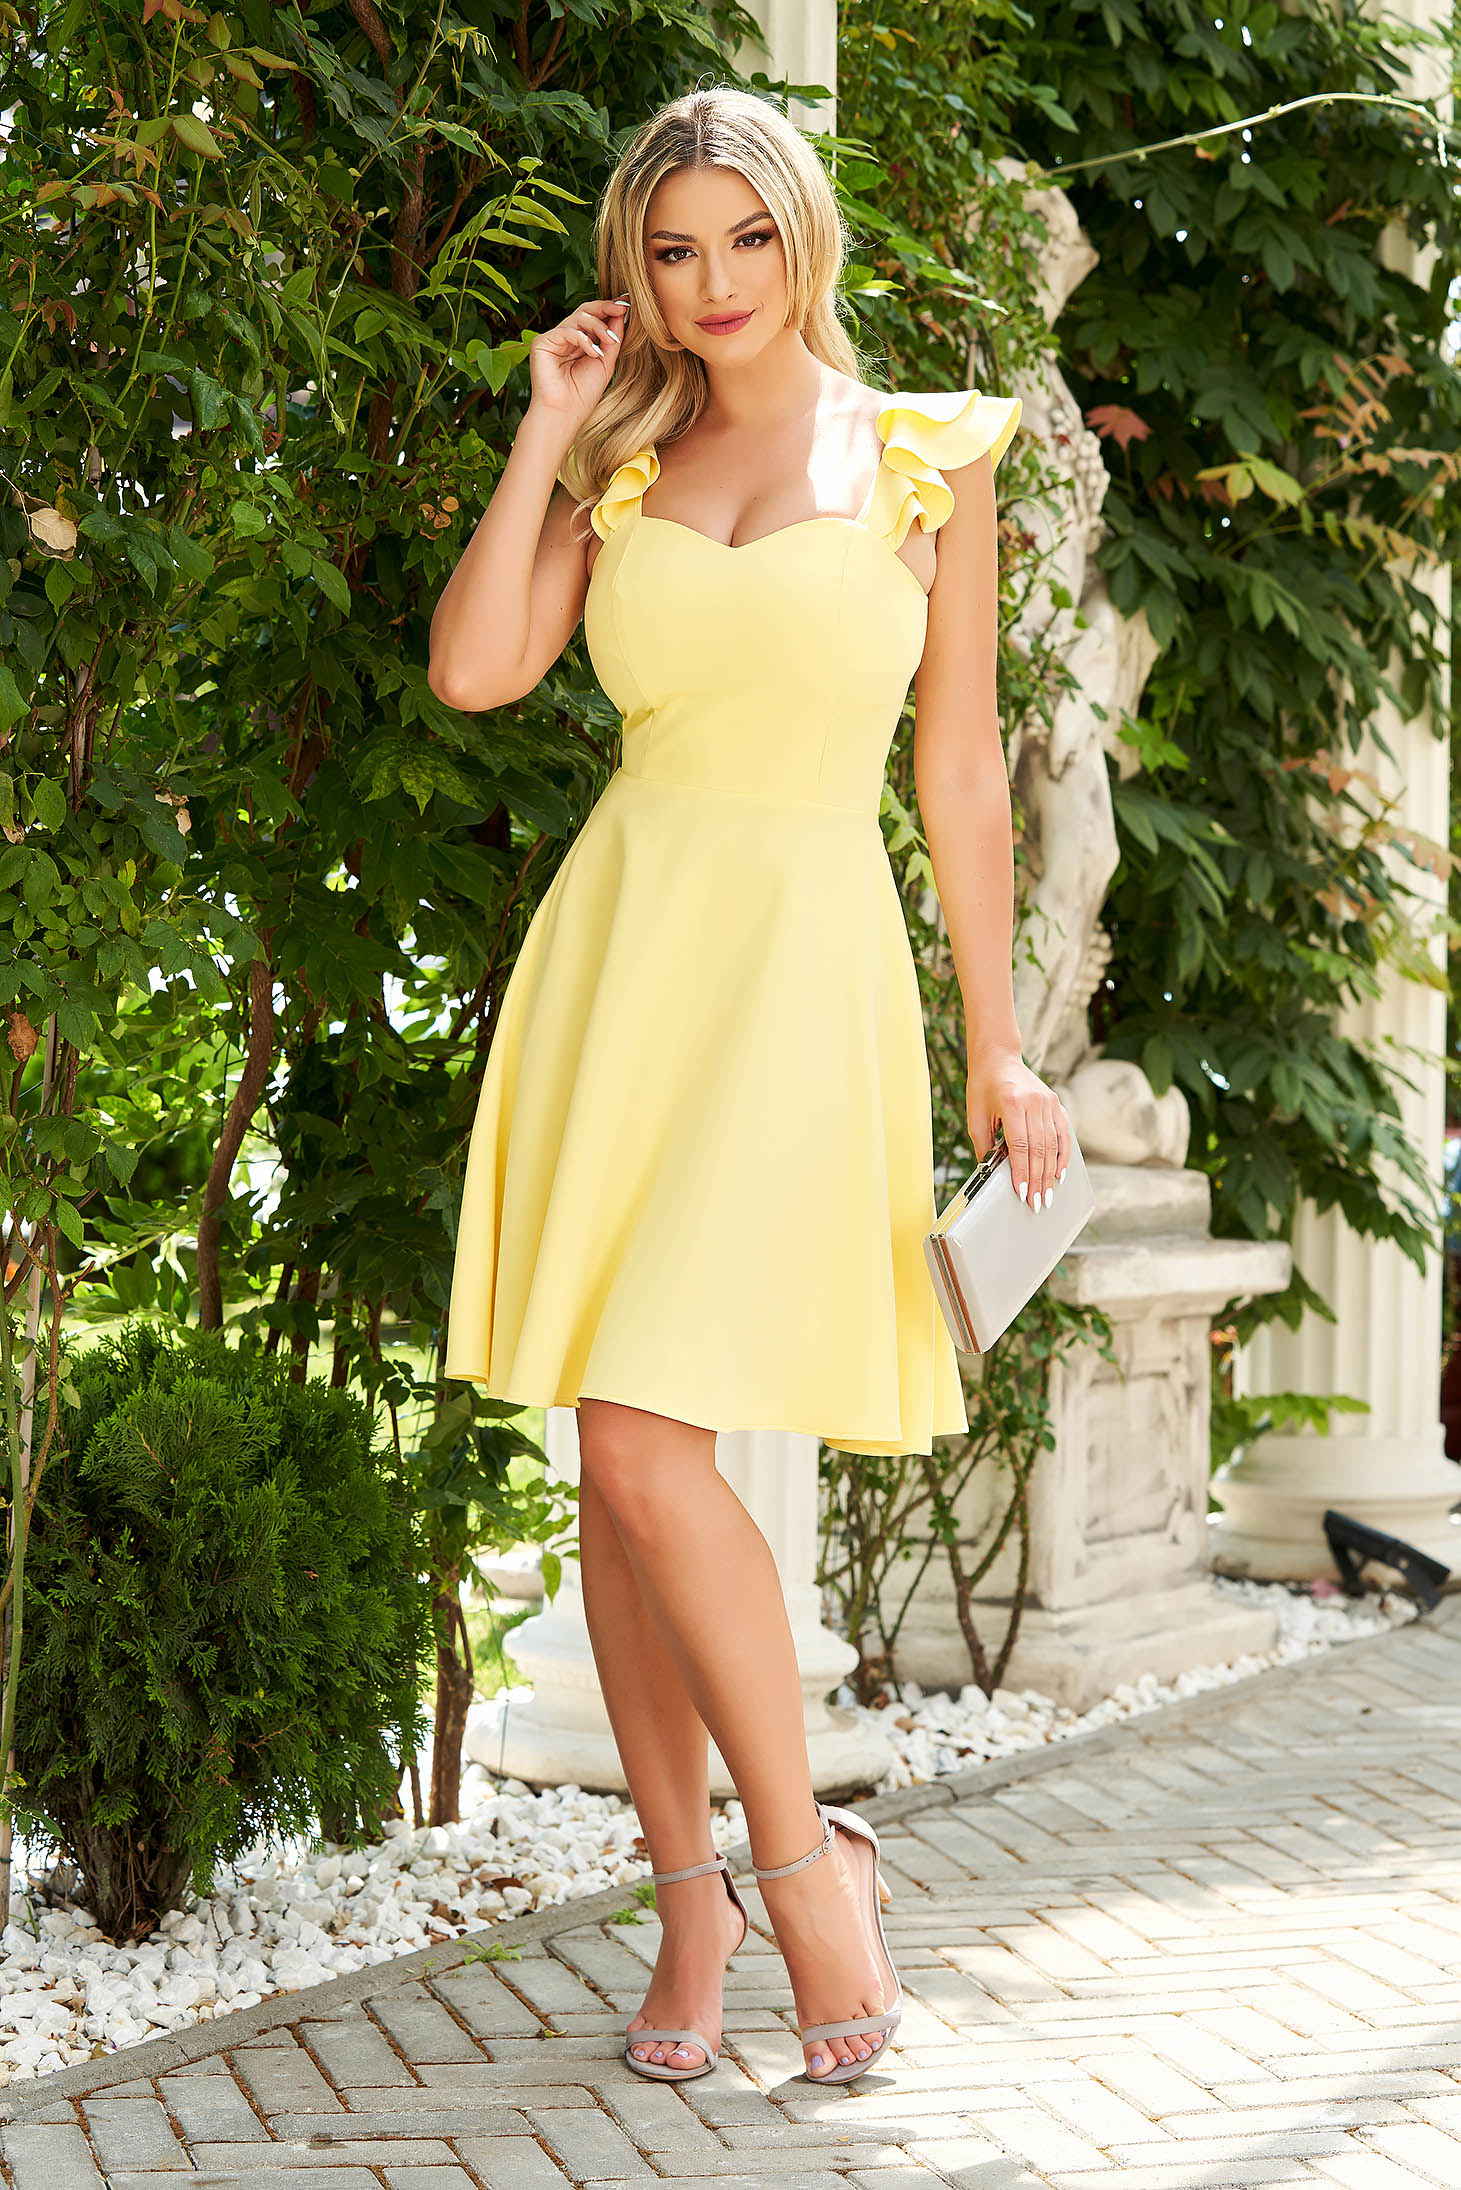 Dress StarShinerS yellow elegant short cut cloth with ruffle details thin fabric